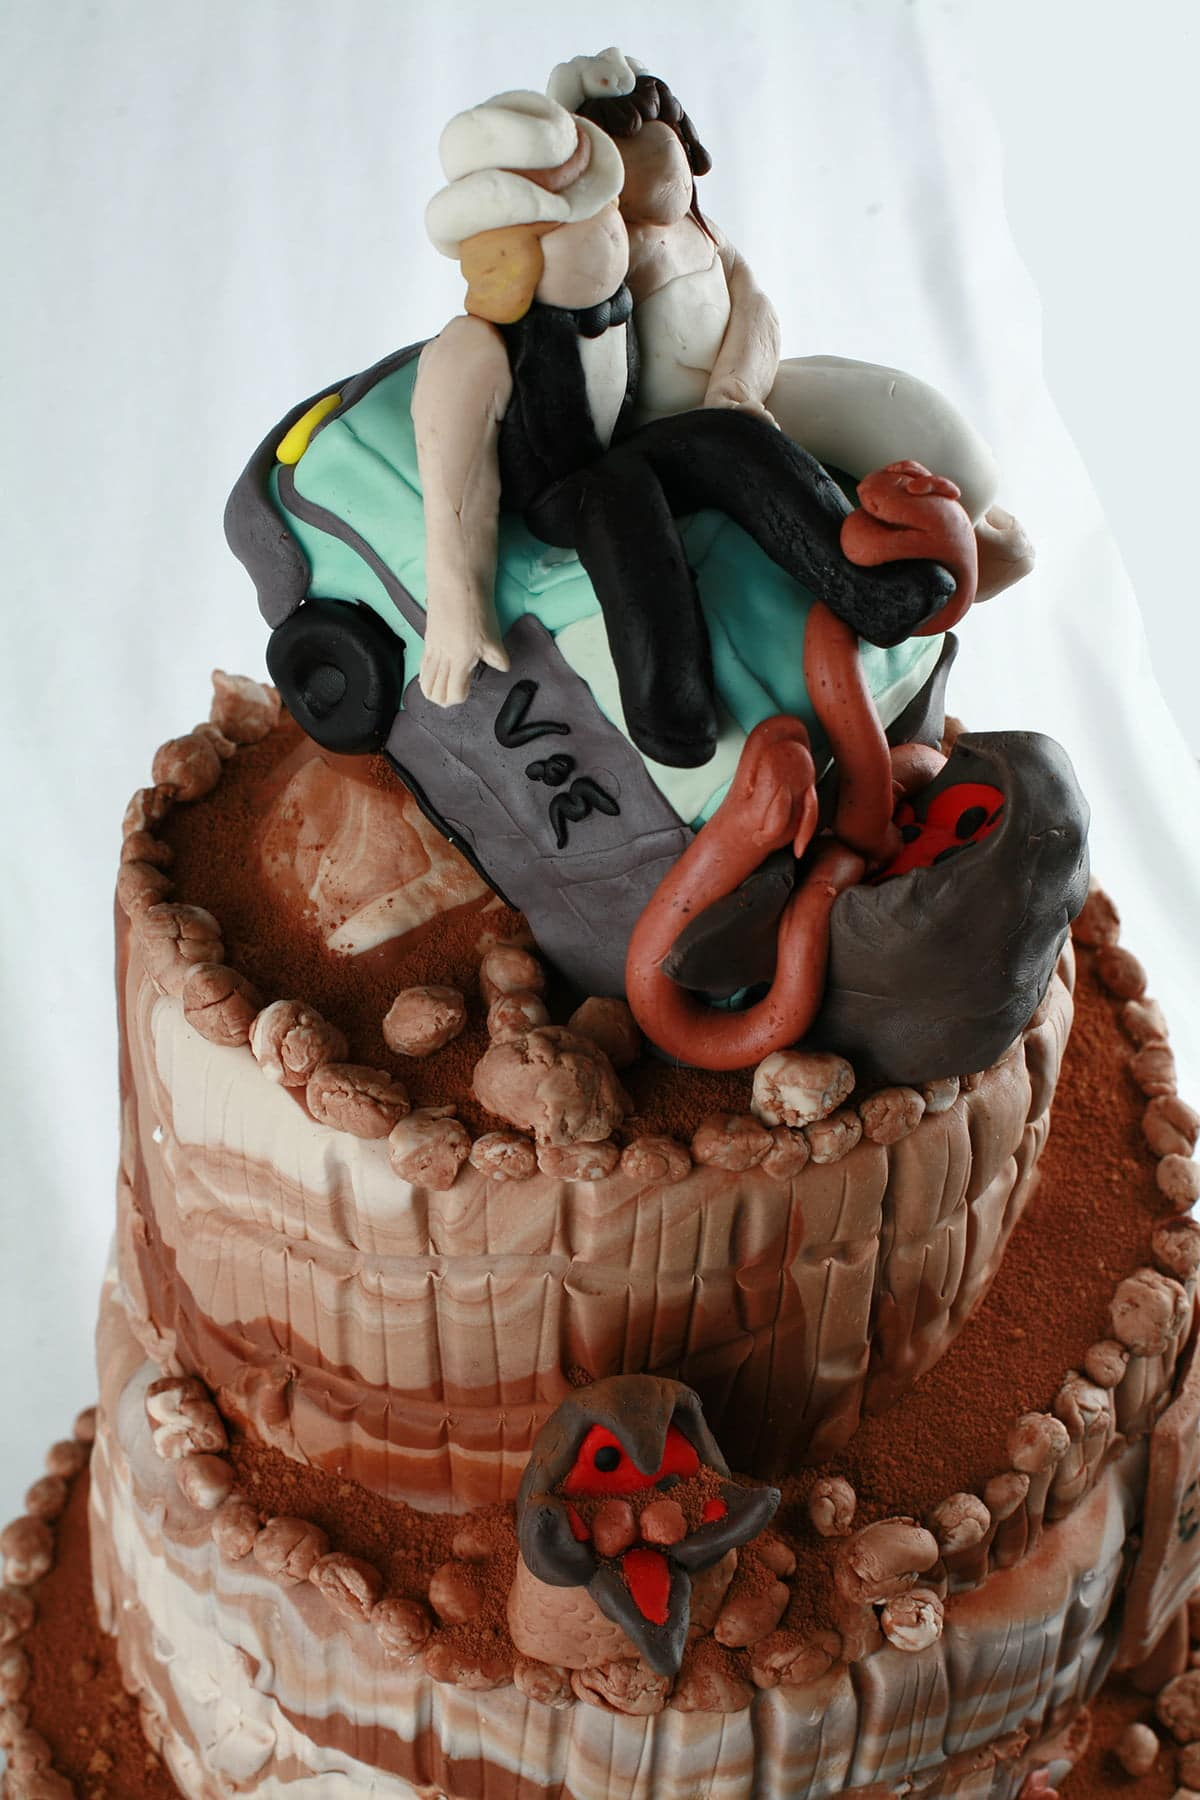 """Detail photos of a """"Tremors"""" themed wedding cake, almost entirely decorated in various shades of chocolate fondant."""